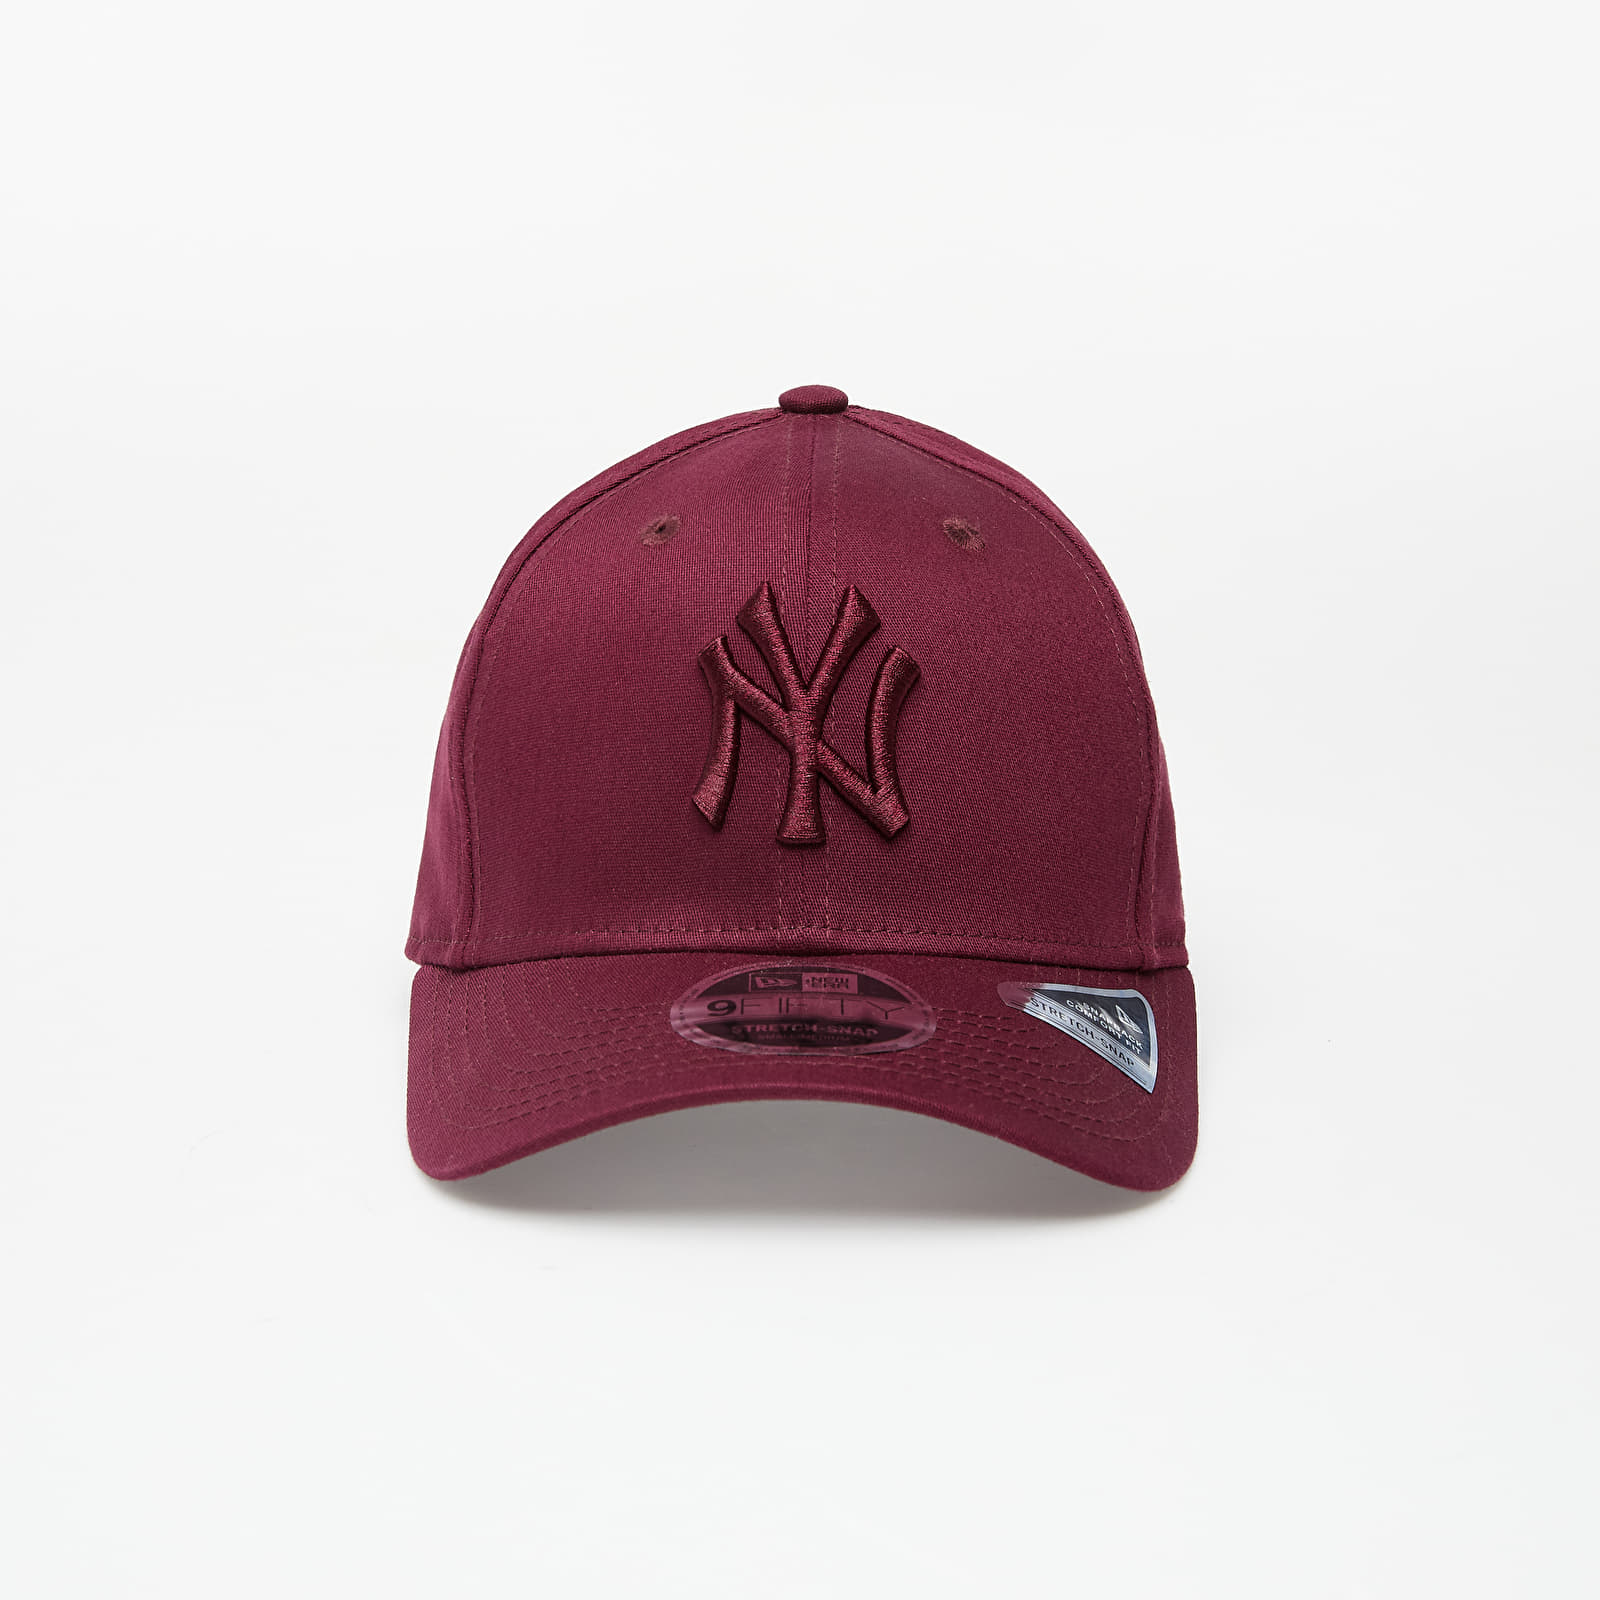 Šiltovky New Era Cap 9Fifty Mlb League Essential Stretch Snap New York Yankees Maroon